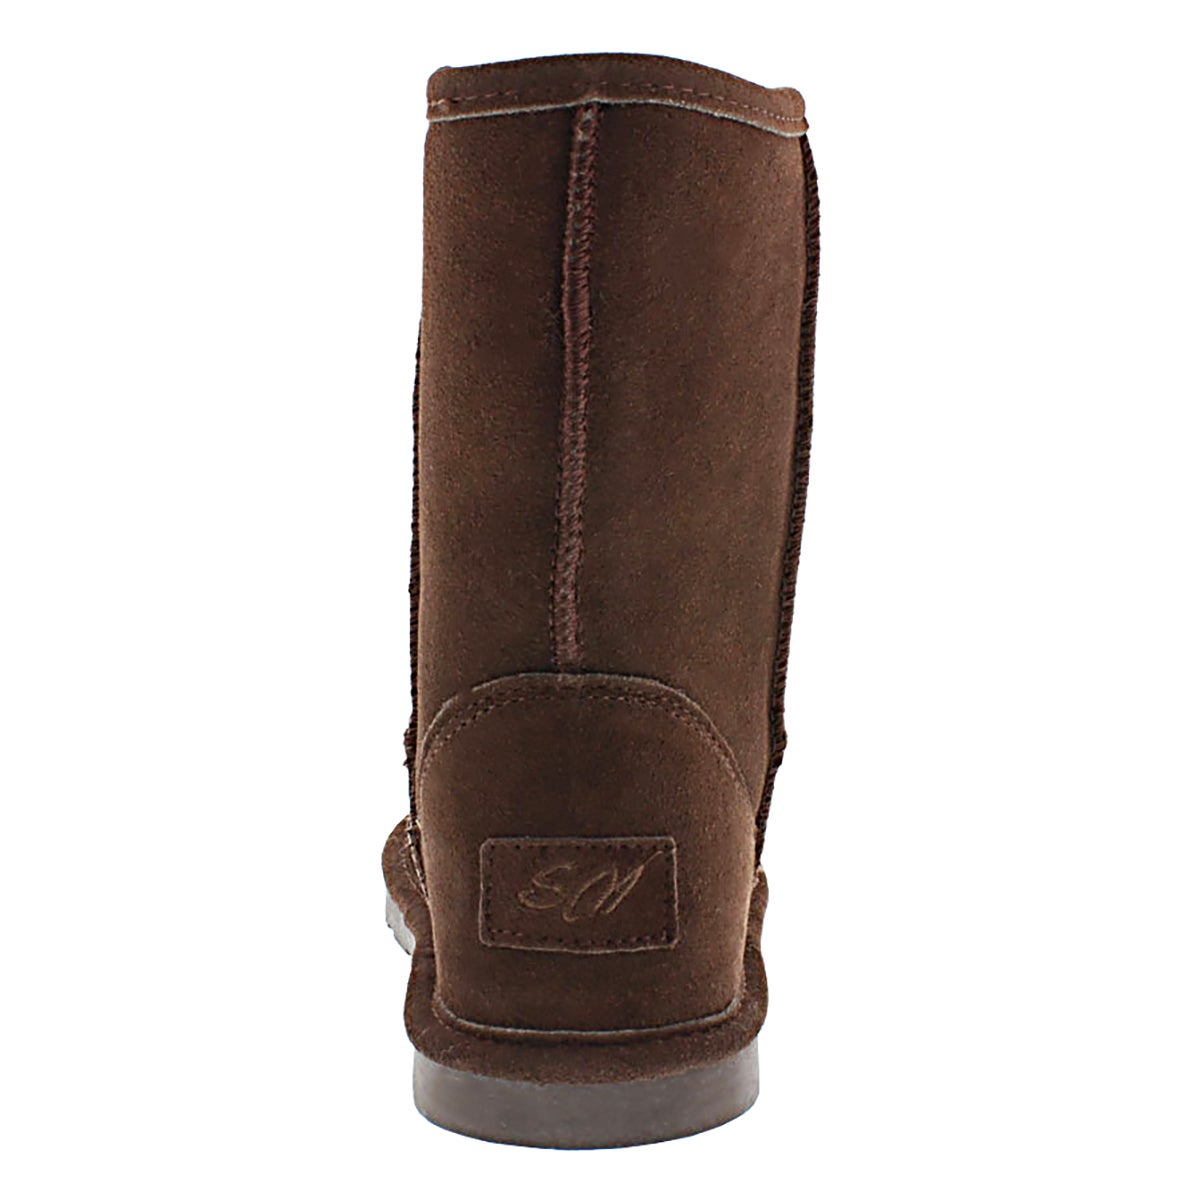 Lds Smocs 4 chocolate mid suede boot